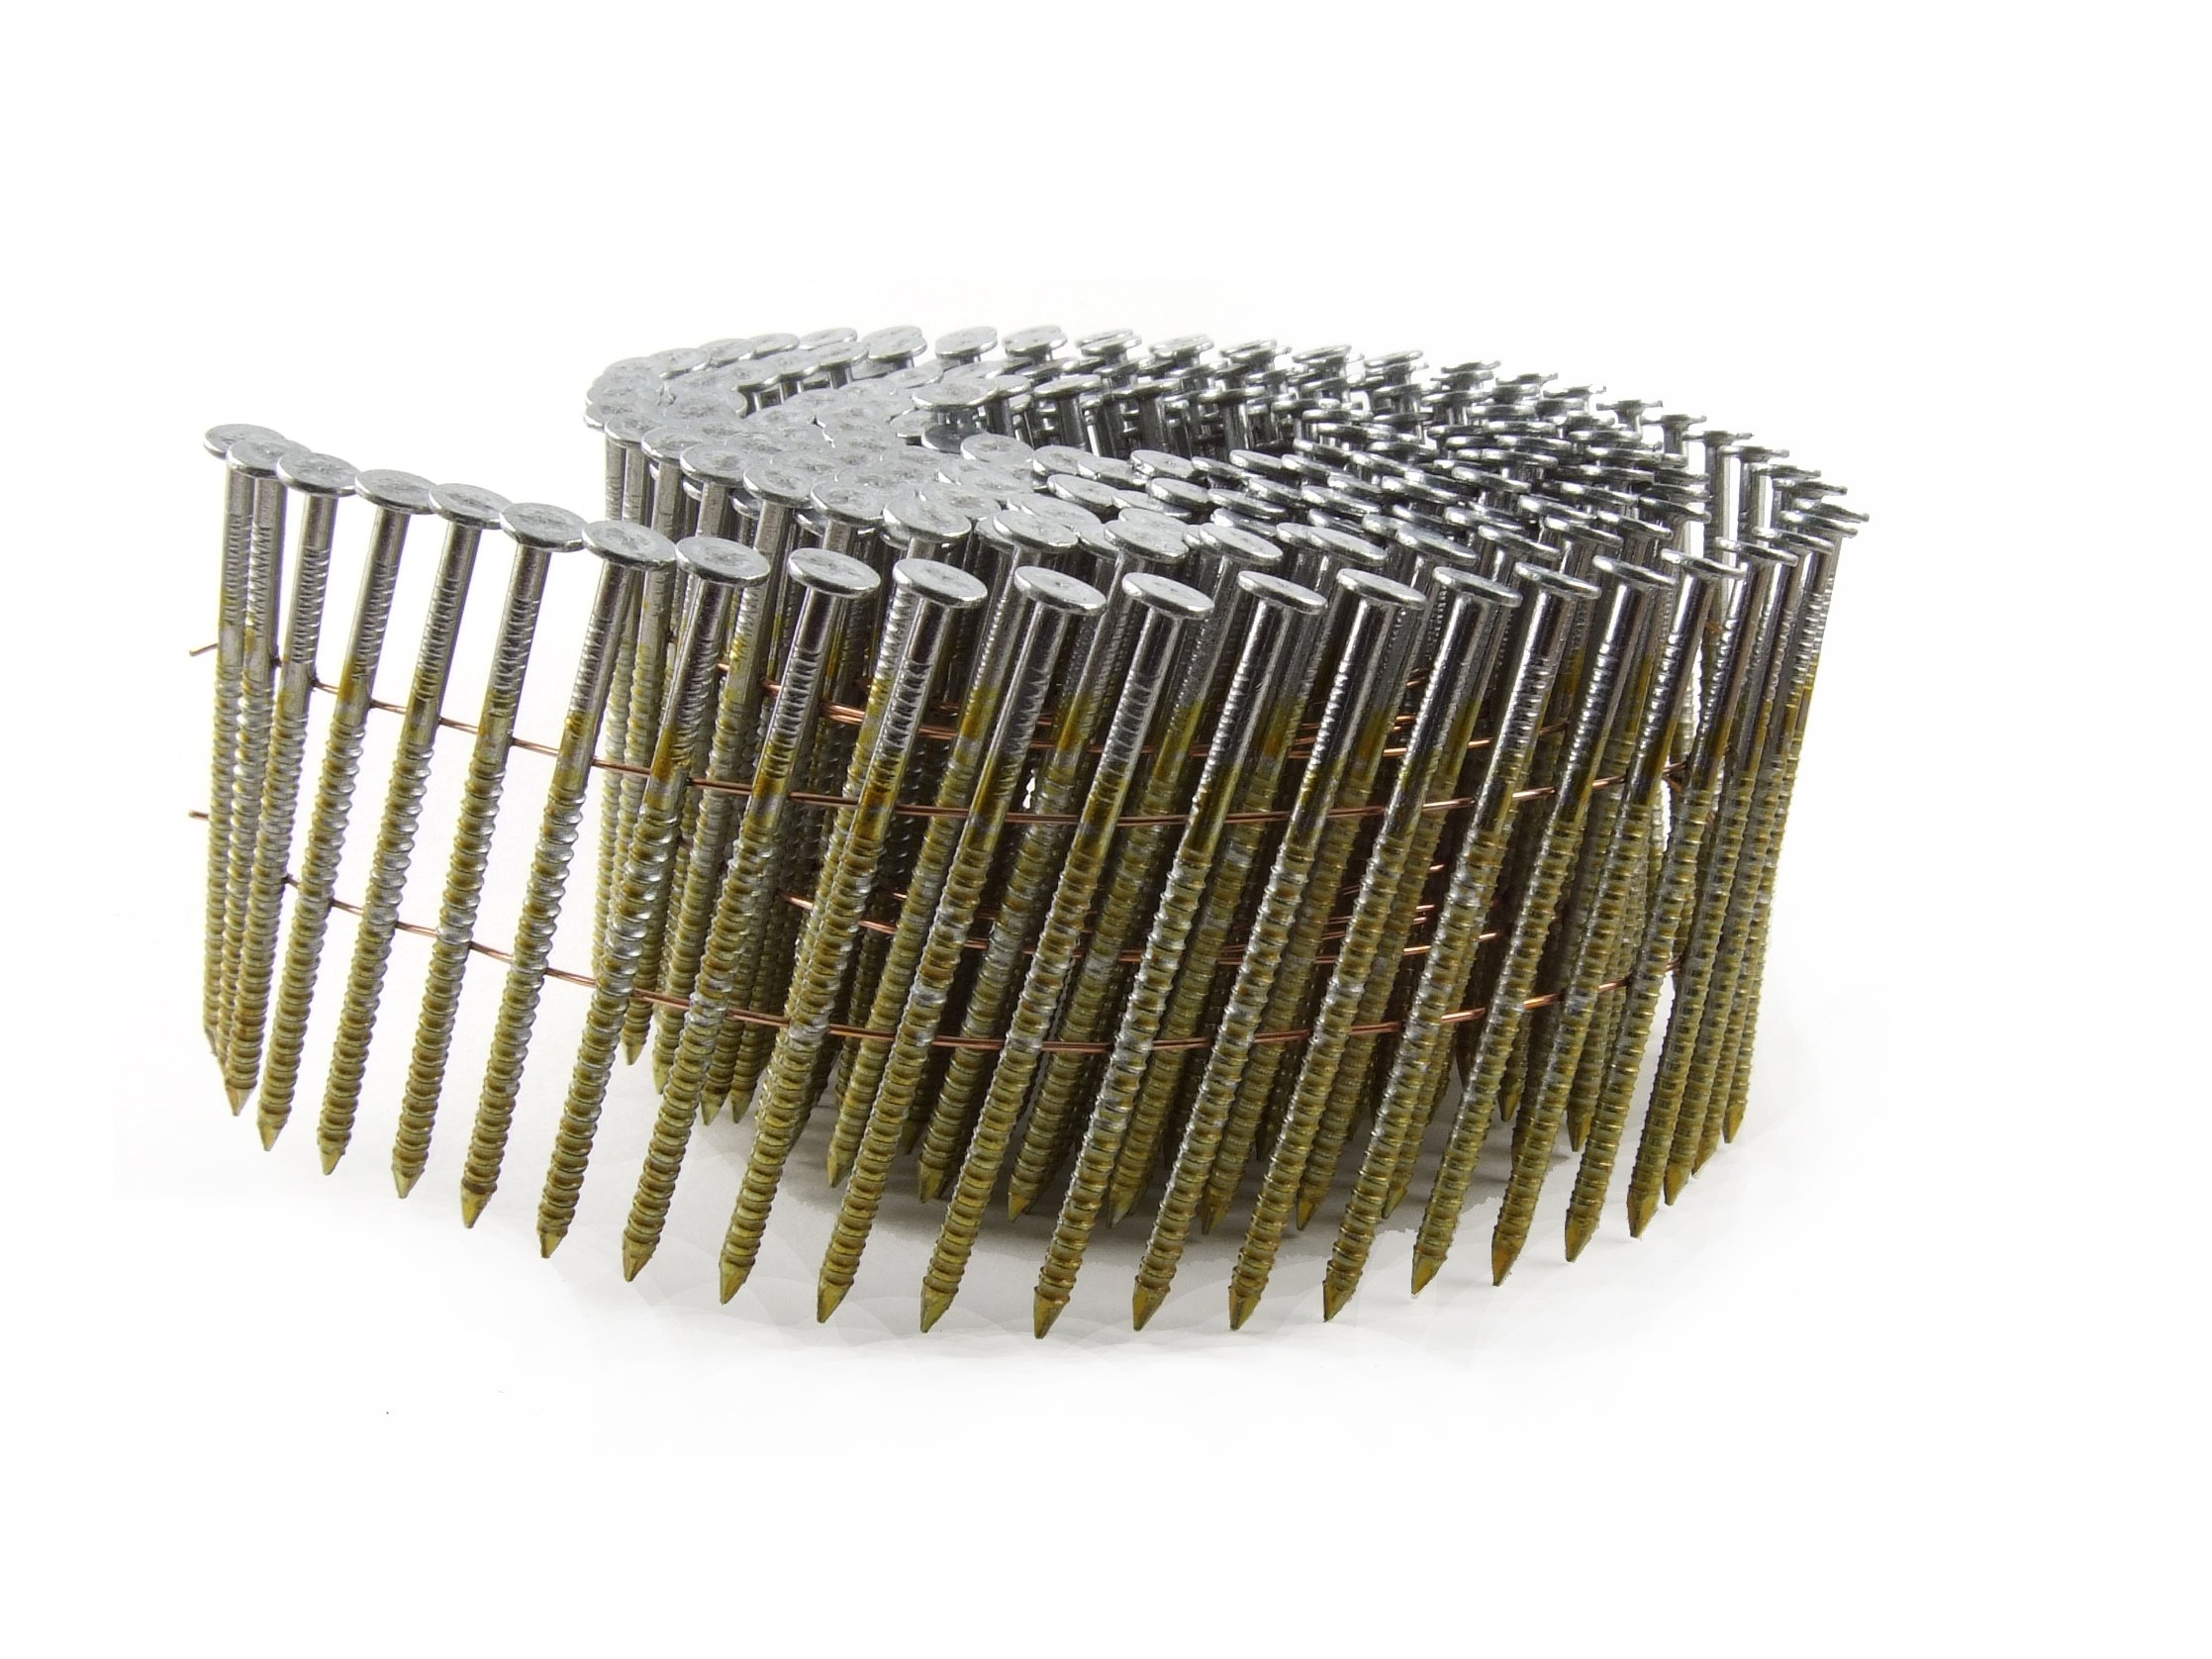 B&C Eagle 2X099HDRC Round Head 2-Inch x .099 x 15 Degree Hot Dip Galvanized Ring Shank Wire Collated Coil Framing Nails (3,000 per box)